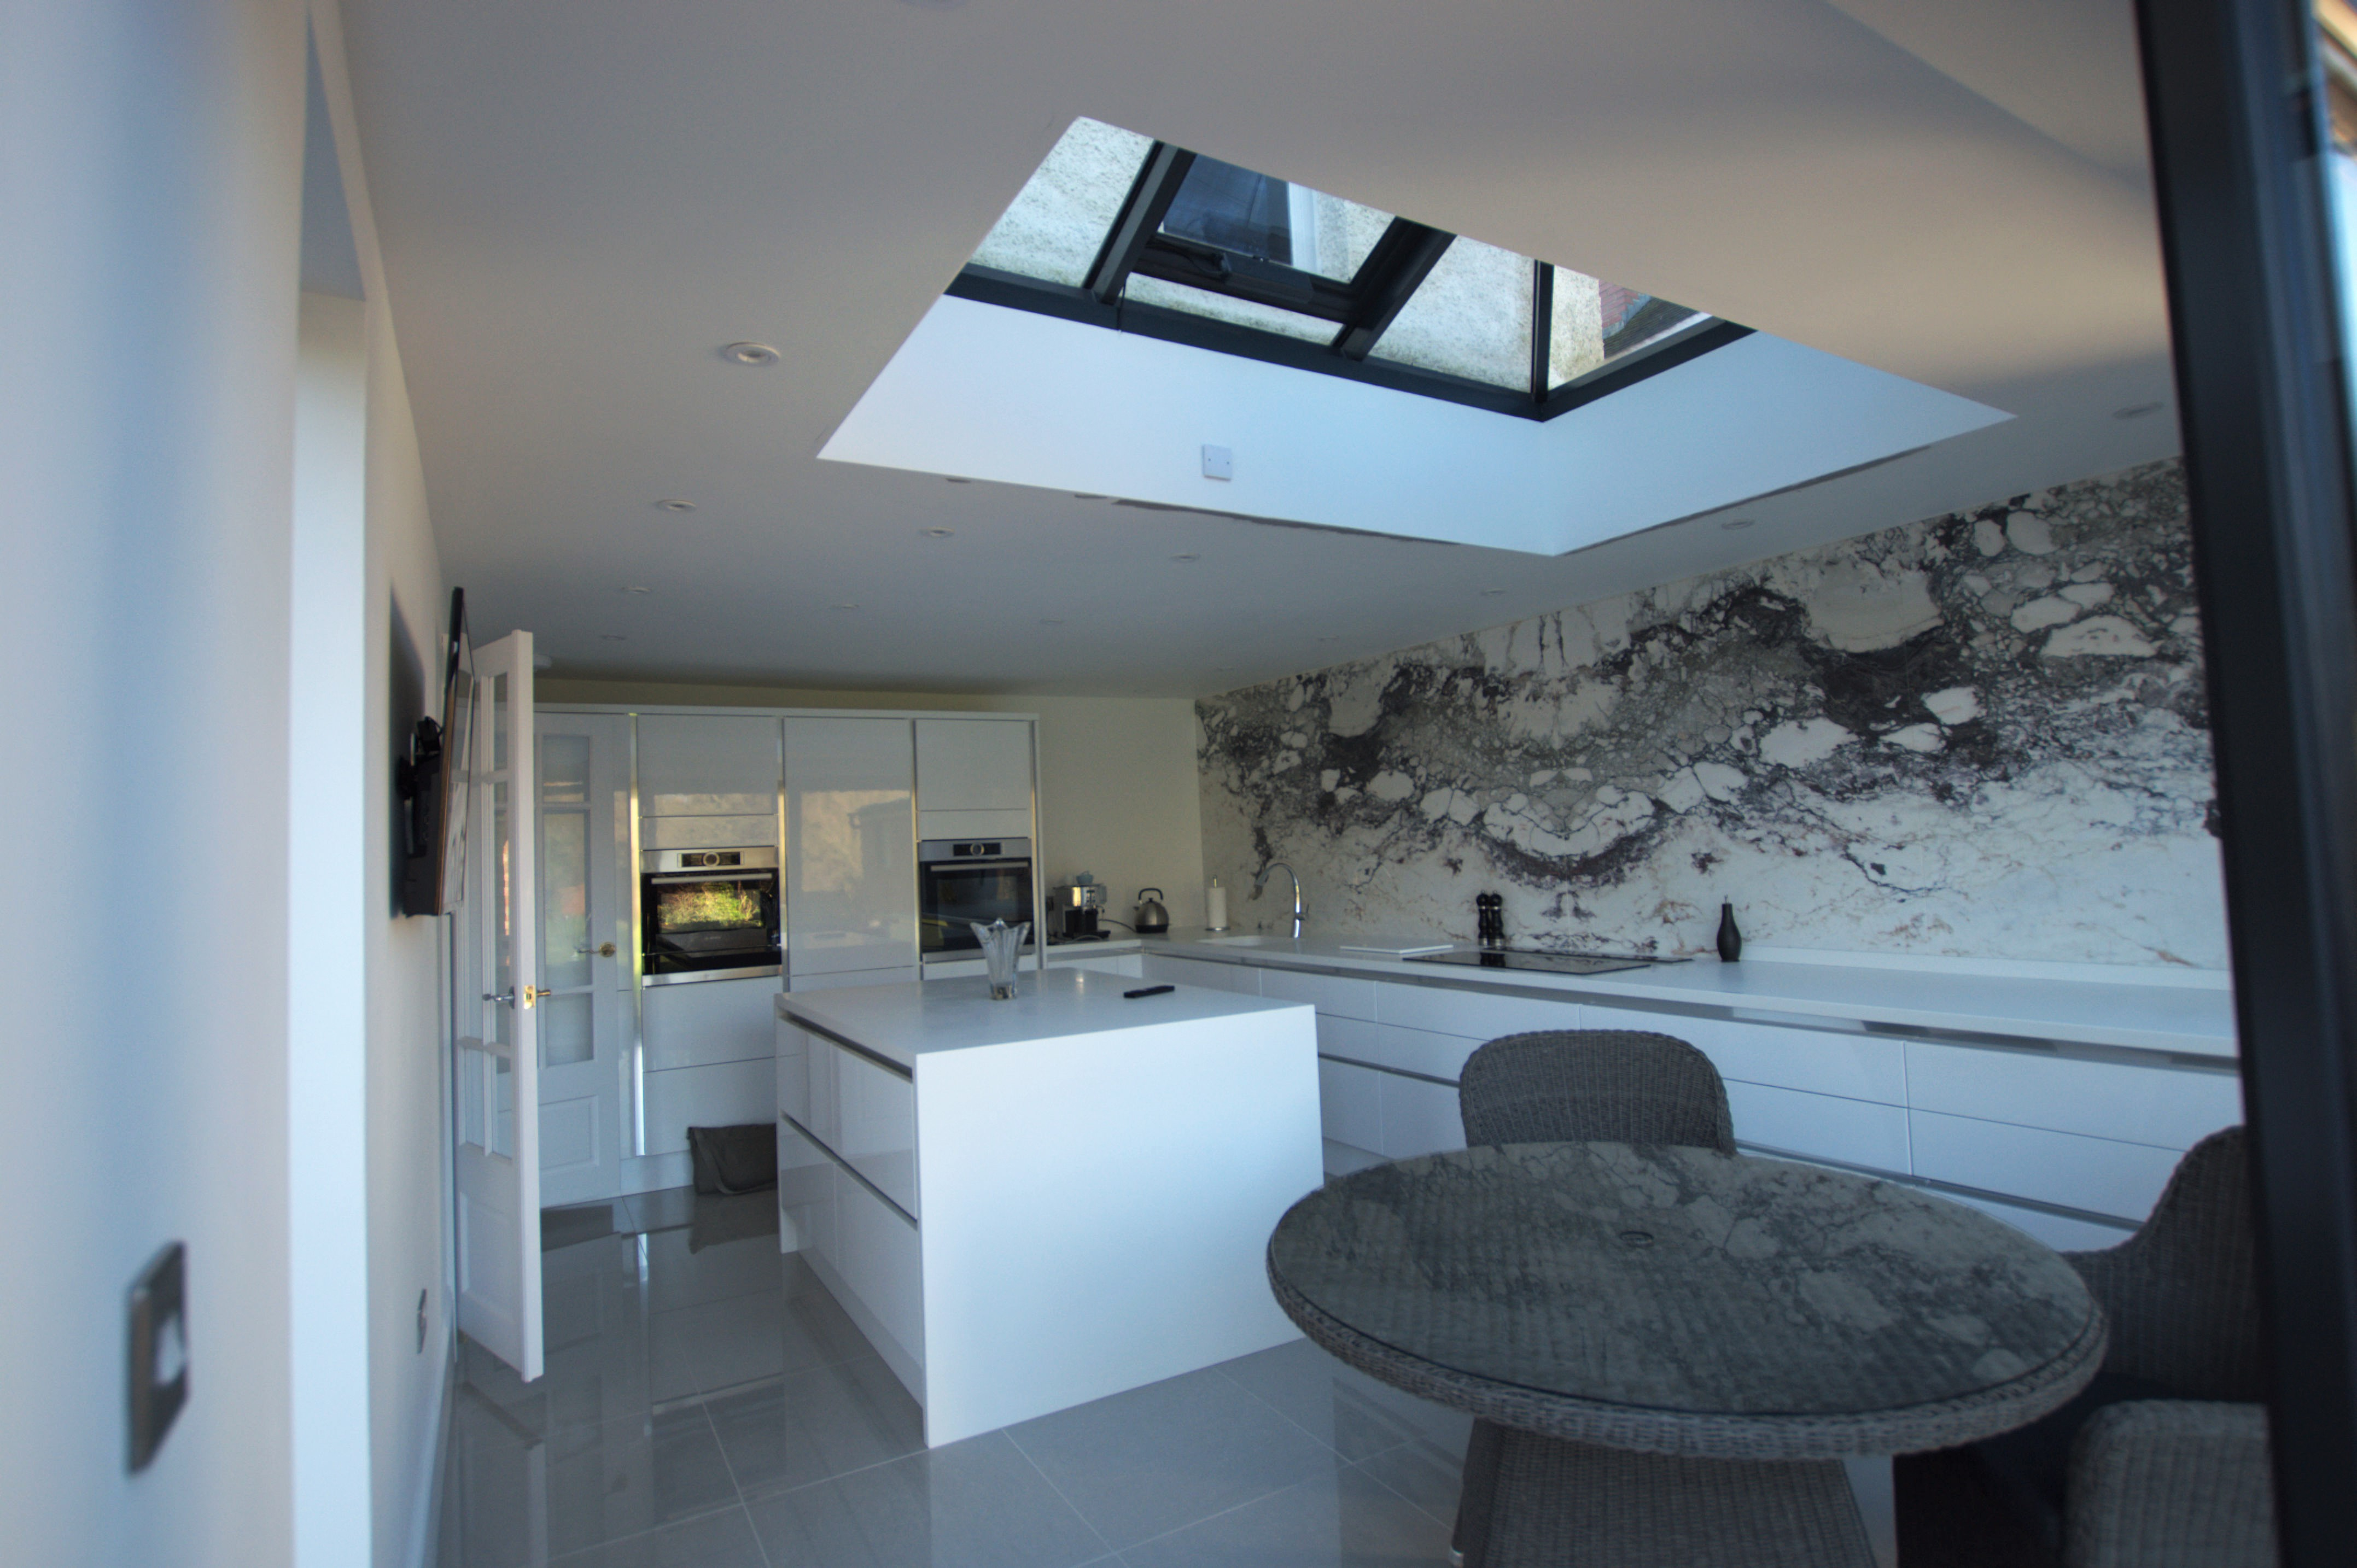 New extended kitchen with roof lantern